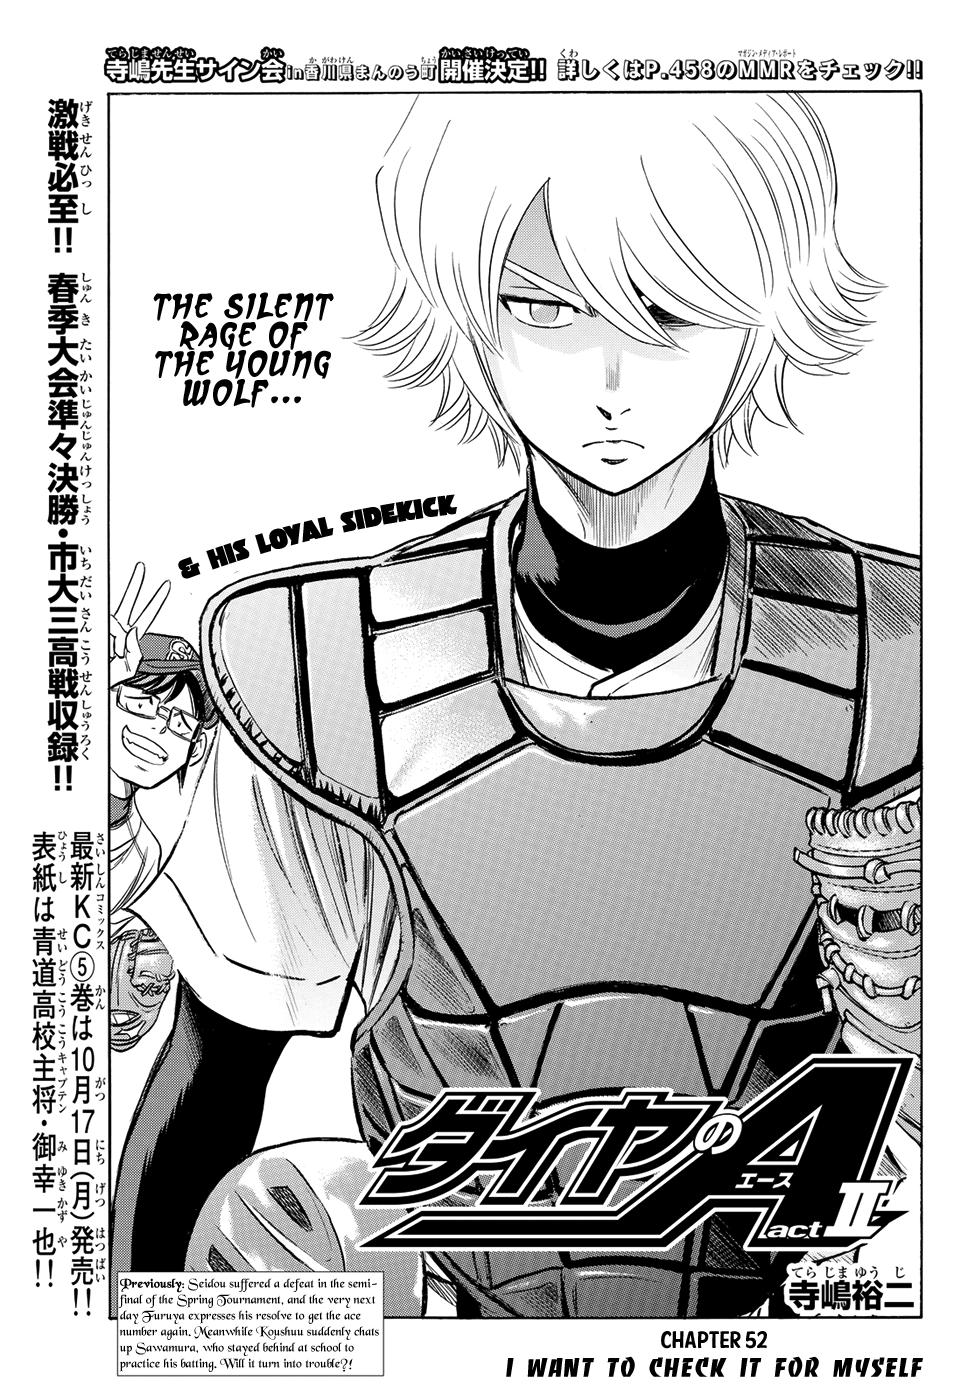 Daiya no A - Act II - Chapter 52